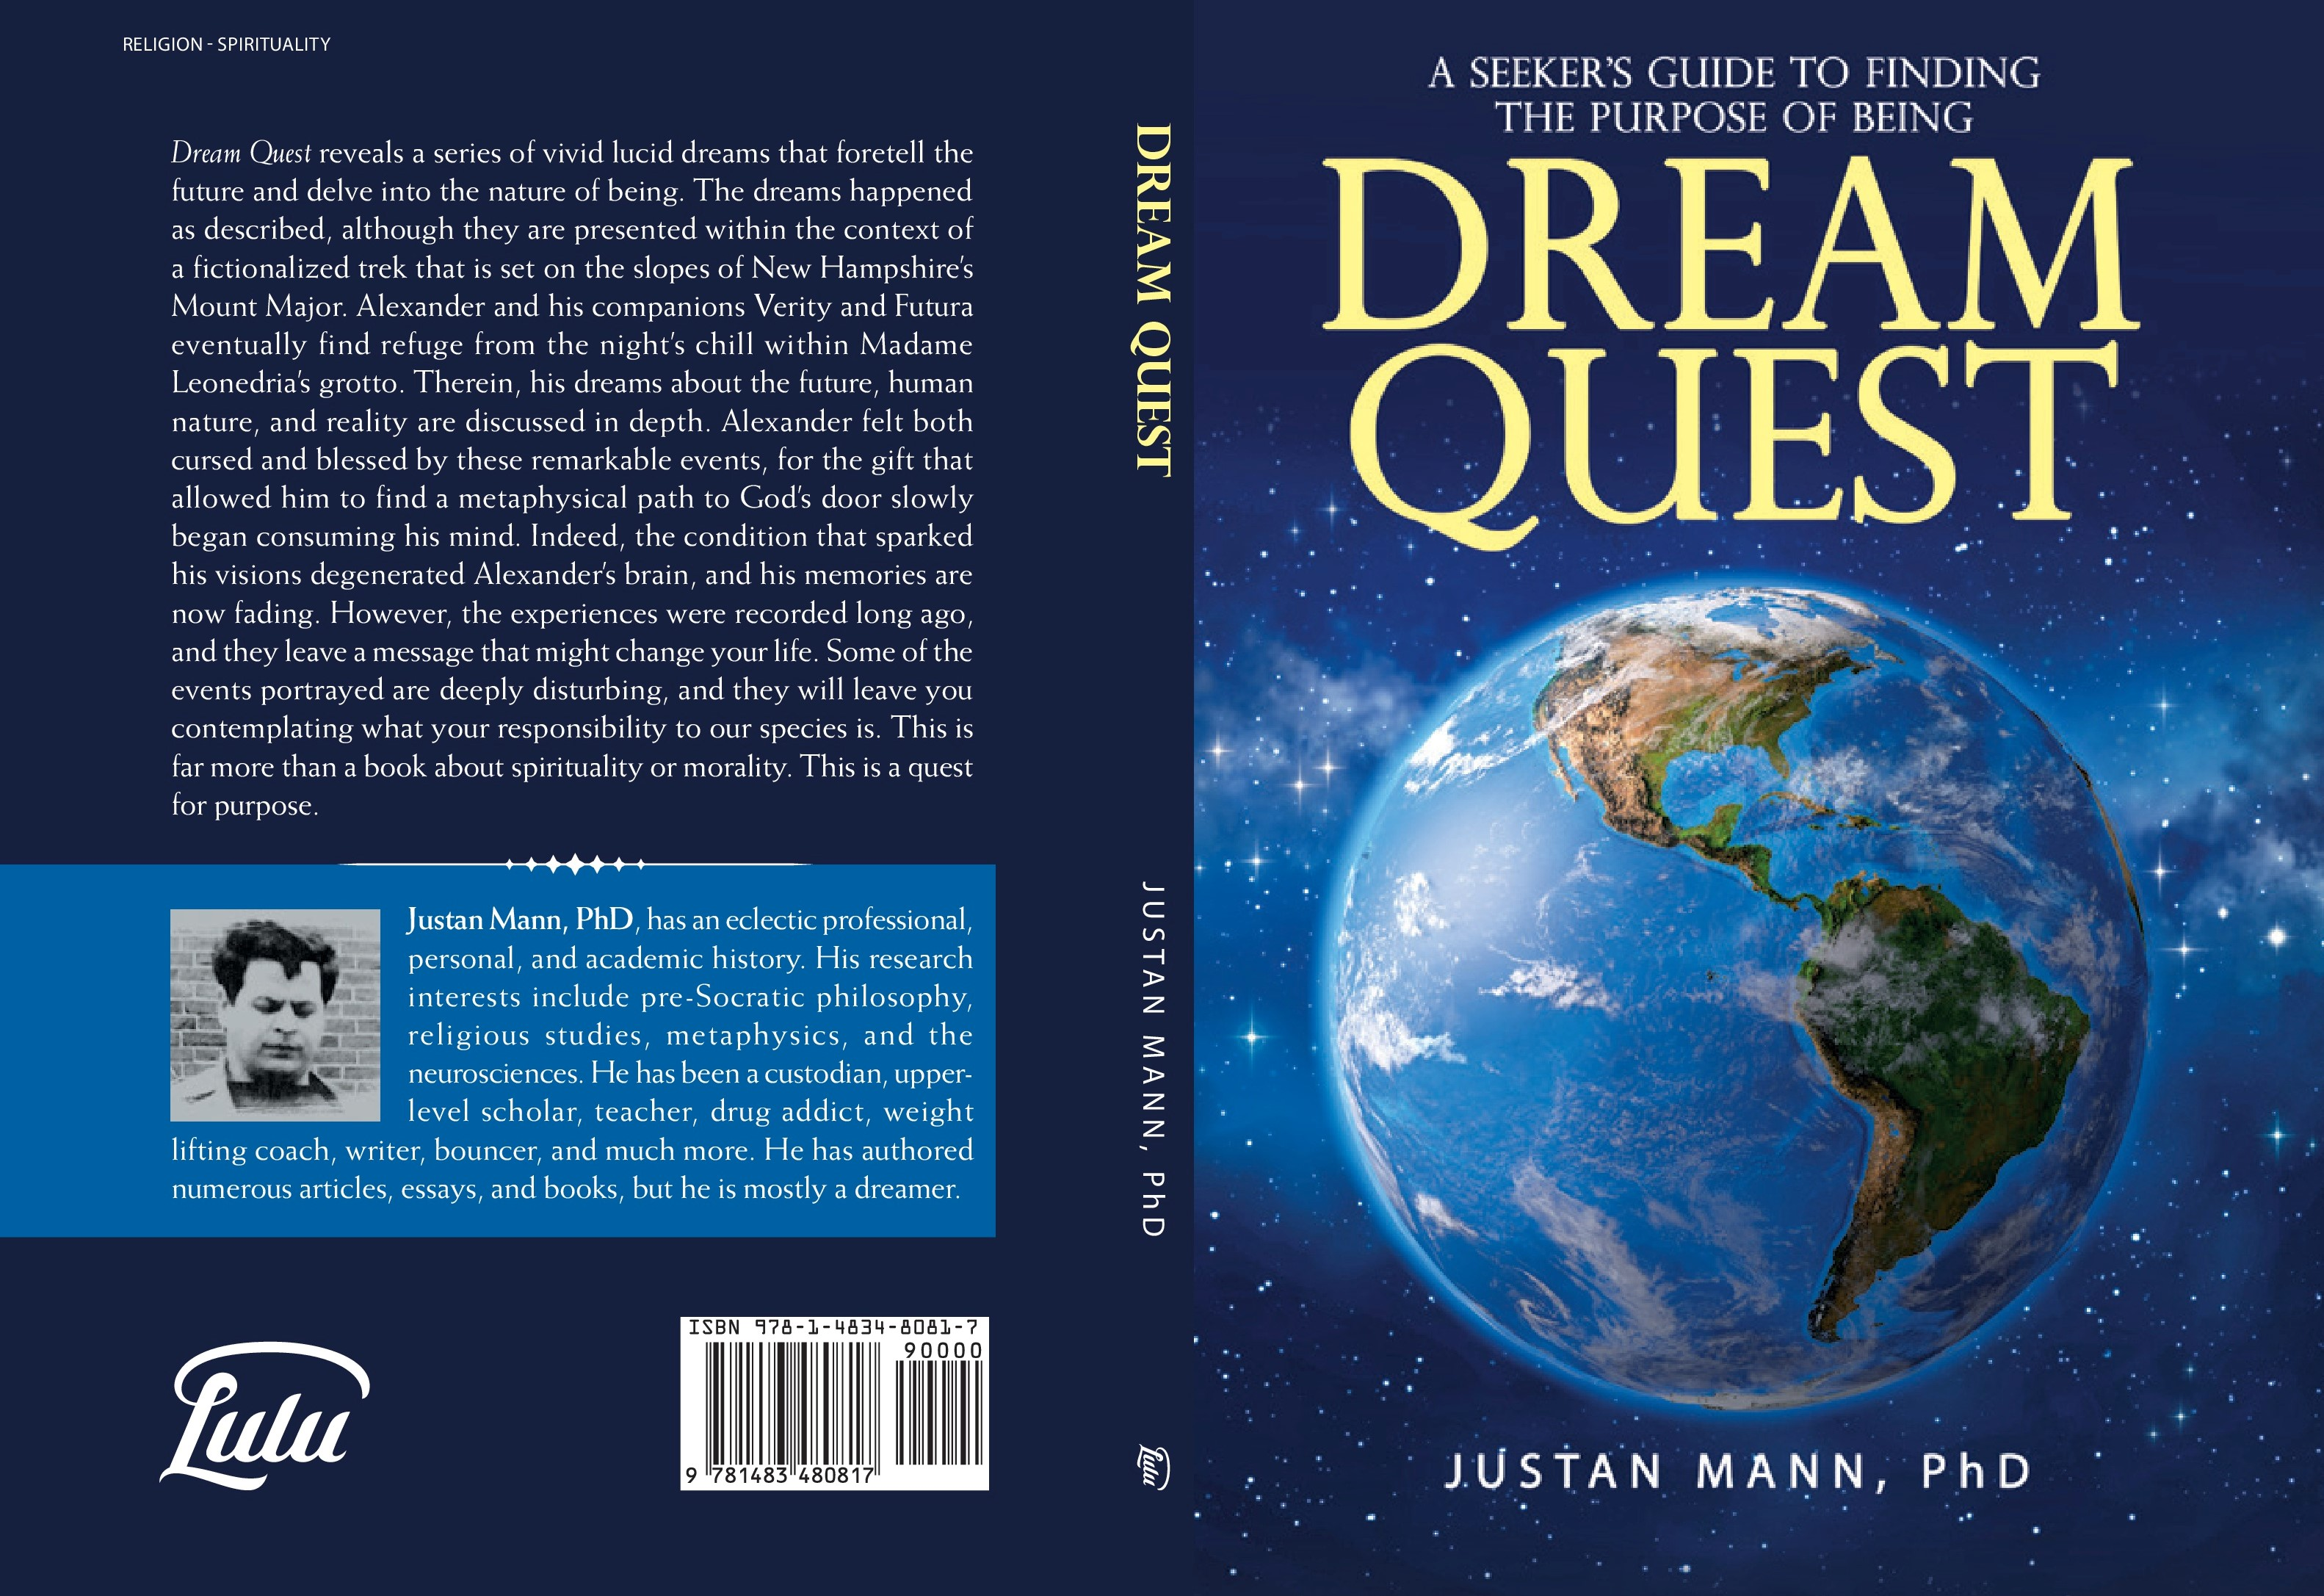 Dream Quest: A Seeker�s Guide to Finding the Purpose of Being